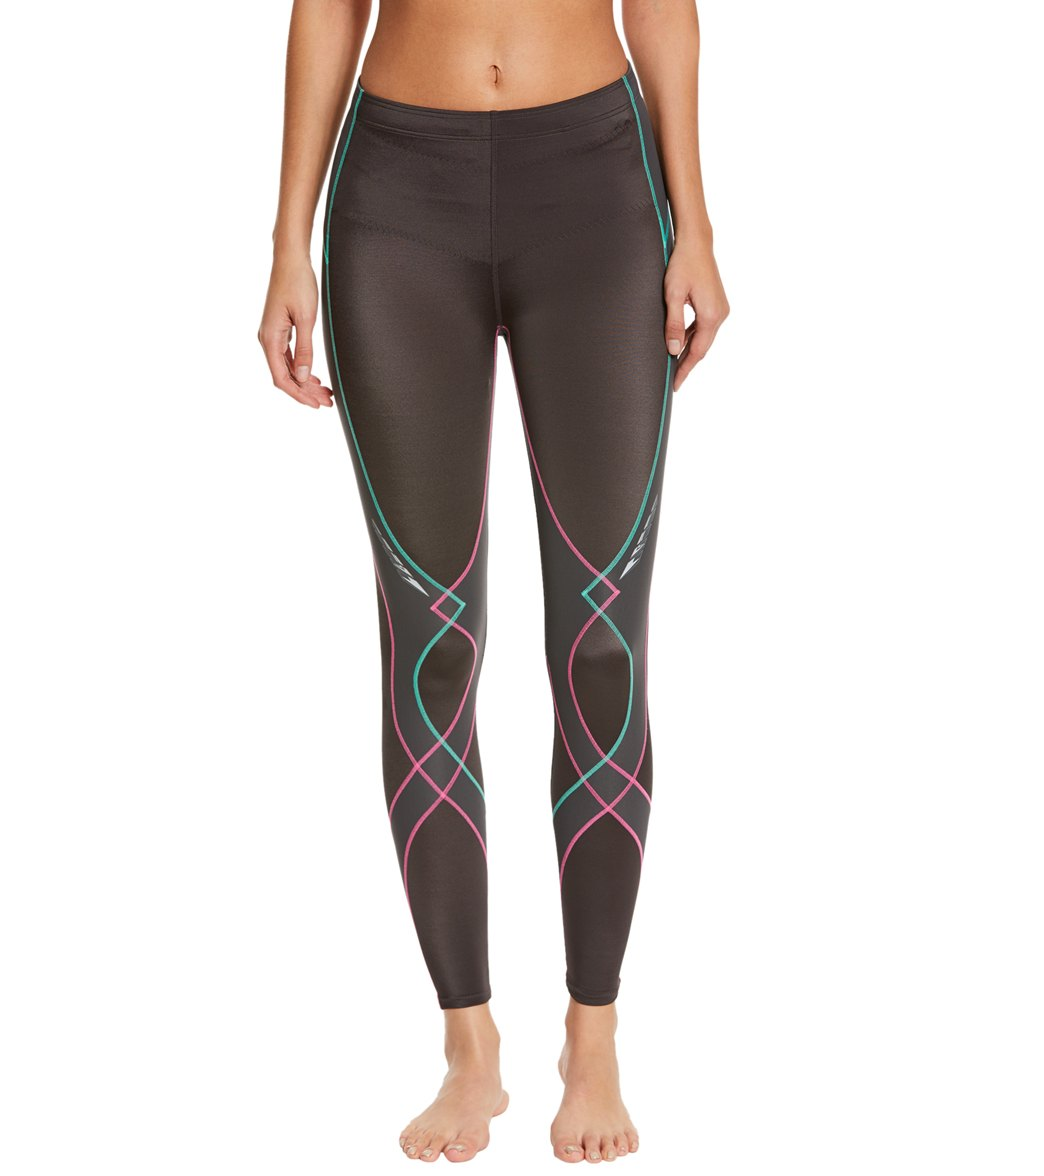 CW-X Women s Stabilyx Compression Running Tights at SwimOutlet.com - Free  Shipping 99d2ecc35438f